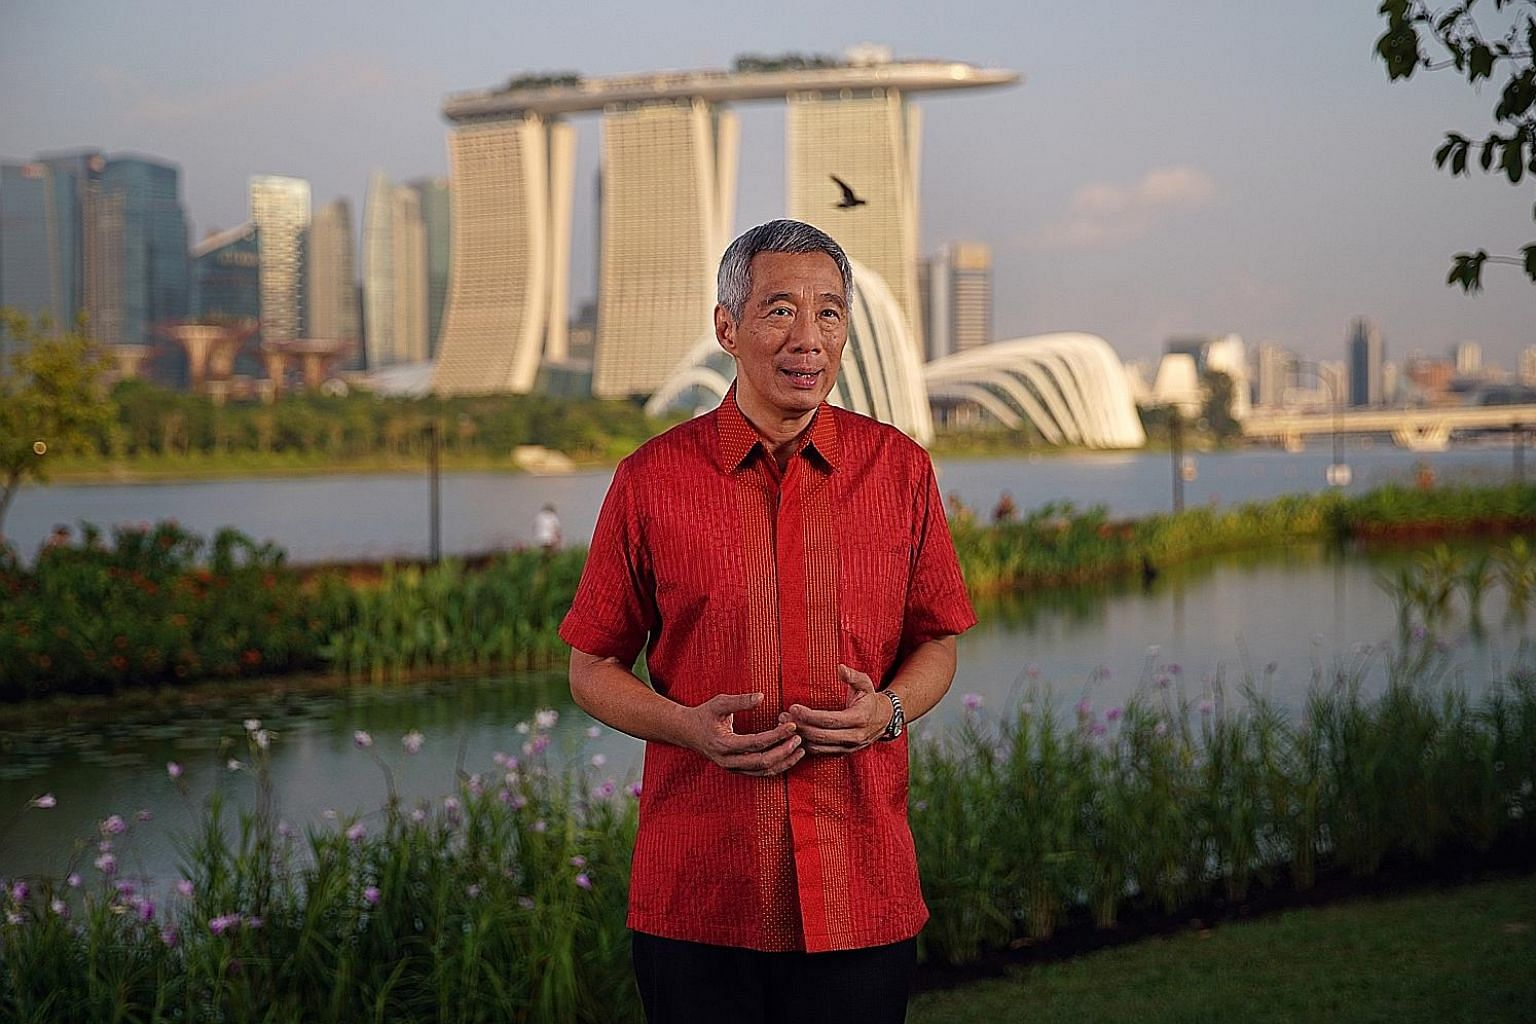 """Prime Minister Lee Hsien Loong delivering his National Day Message at Bay East Garden. He said that siting the Founders' Memorial there would allow Singaporeans to """"remember the values of our founding leaders, see what they have built and commit ours"""